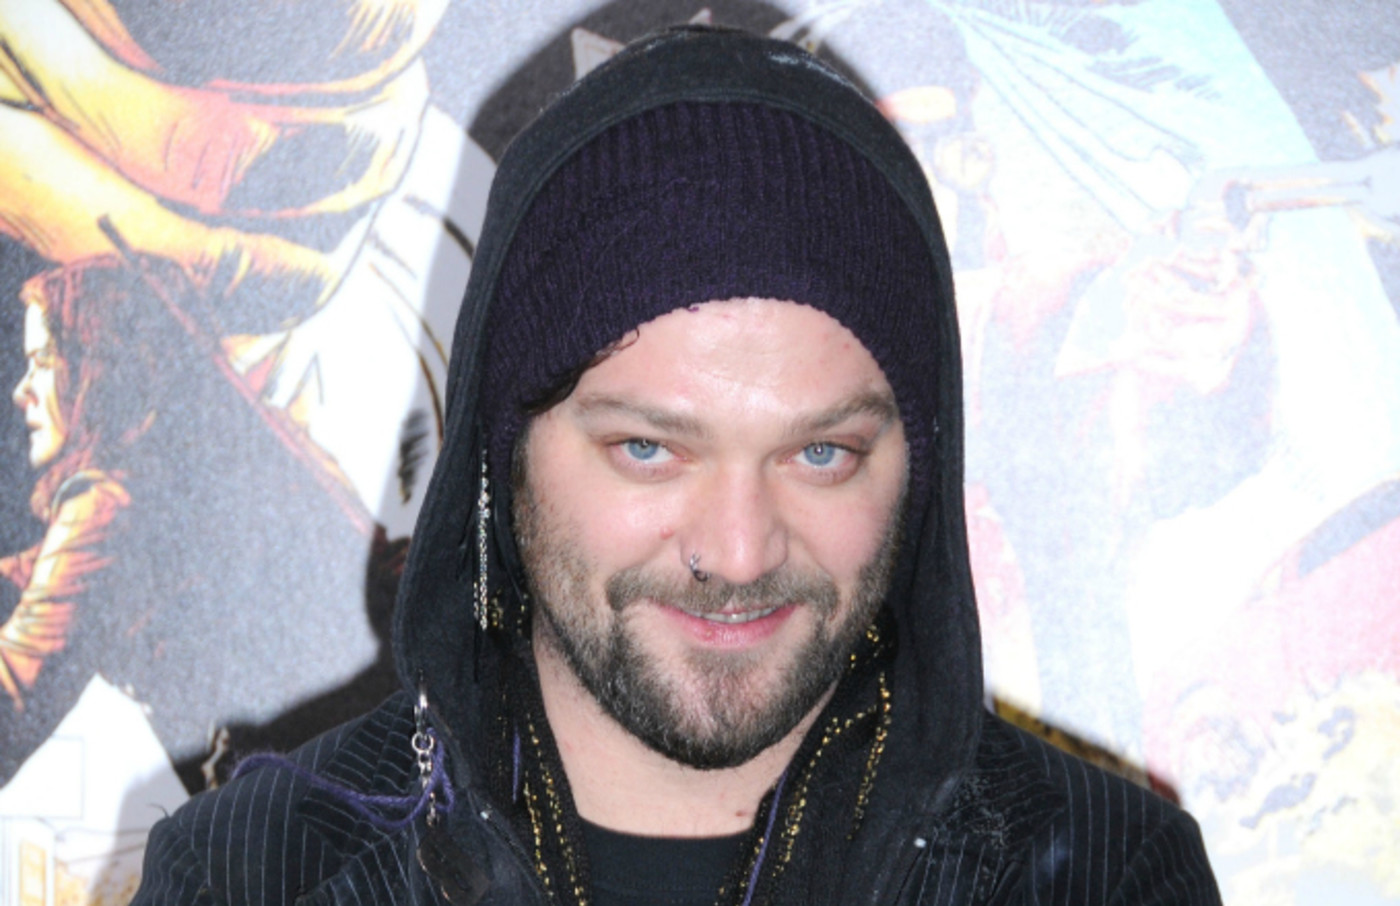 TV personality Bam Margera